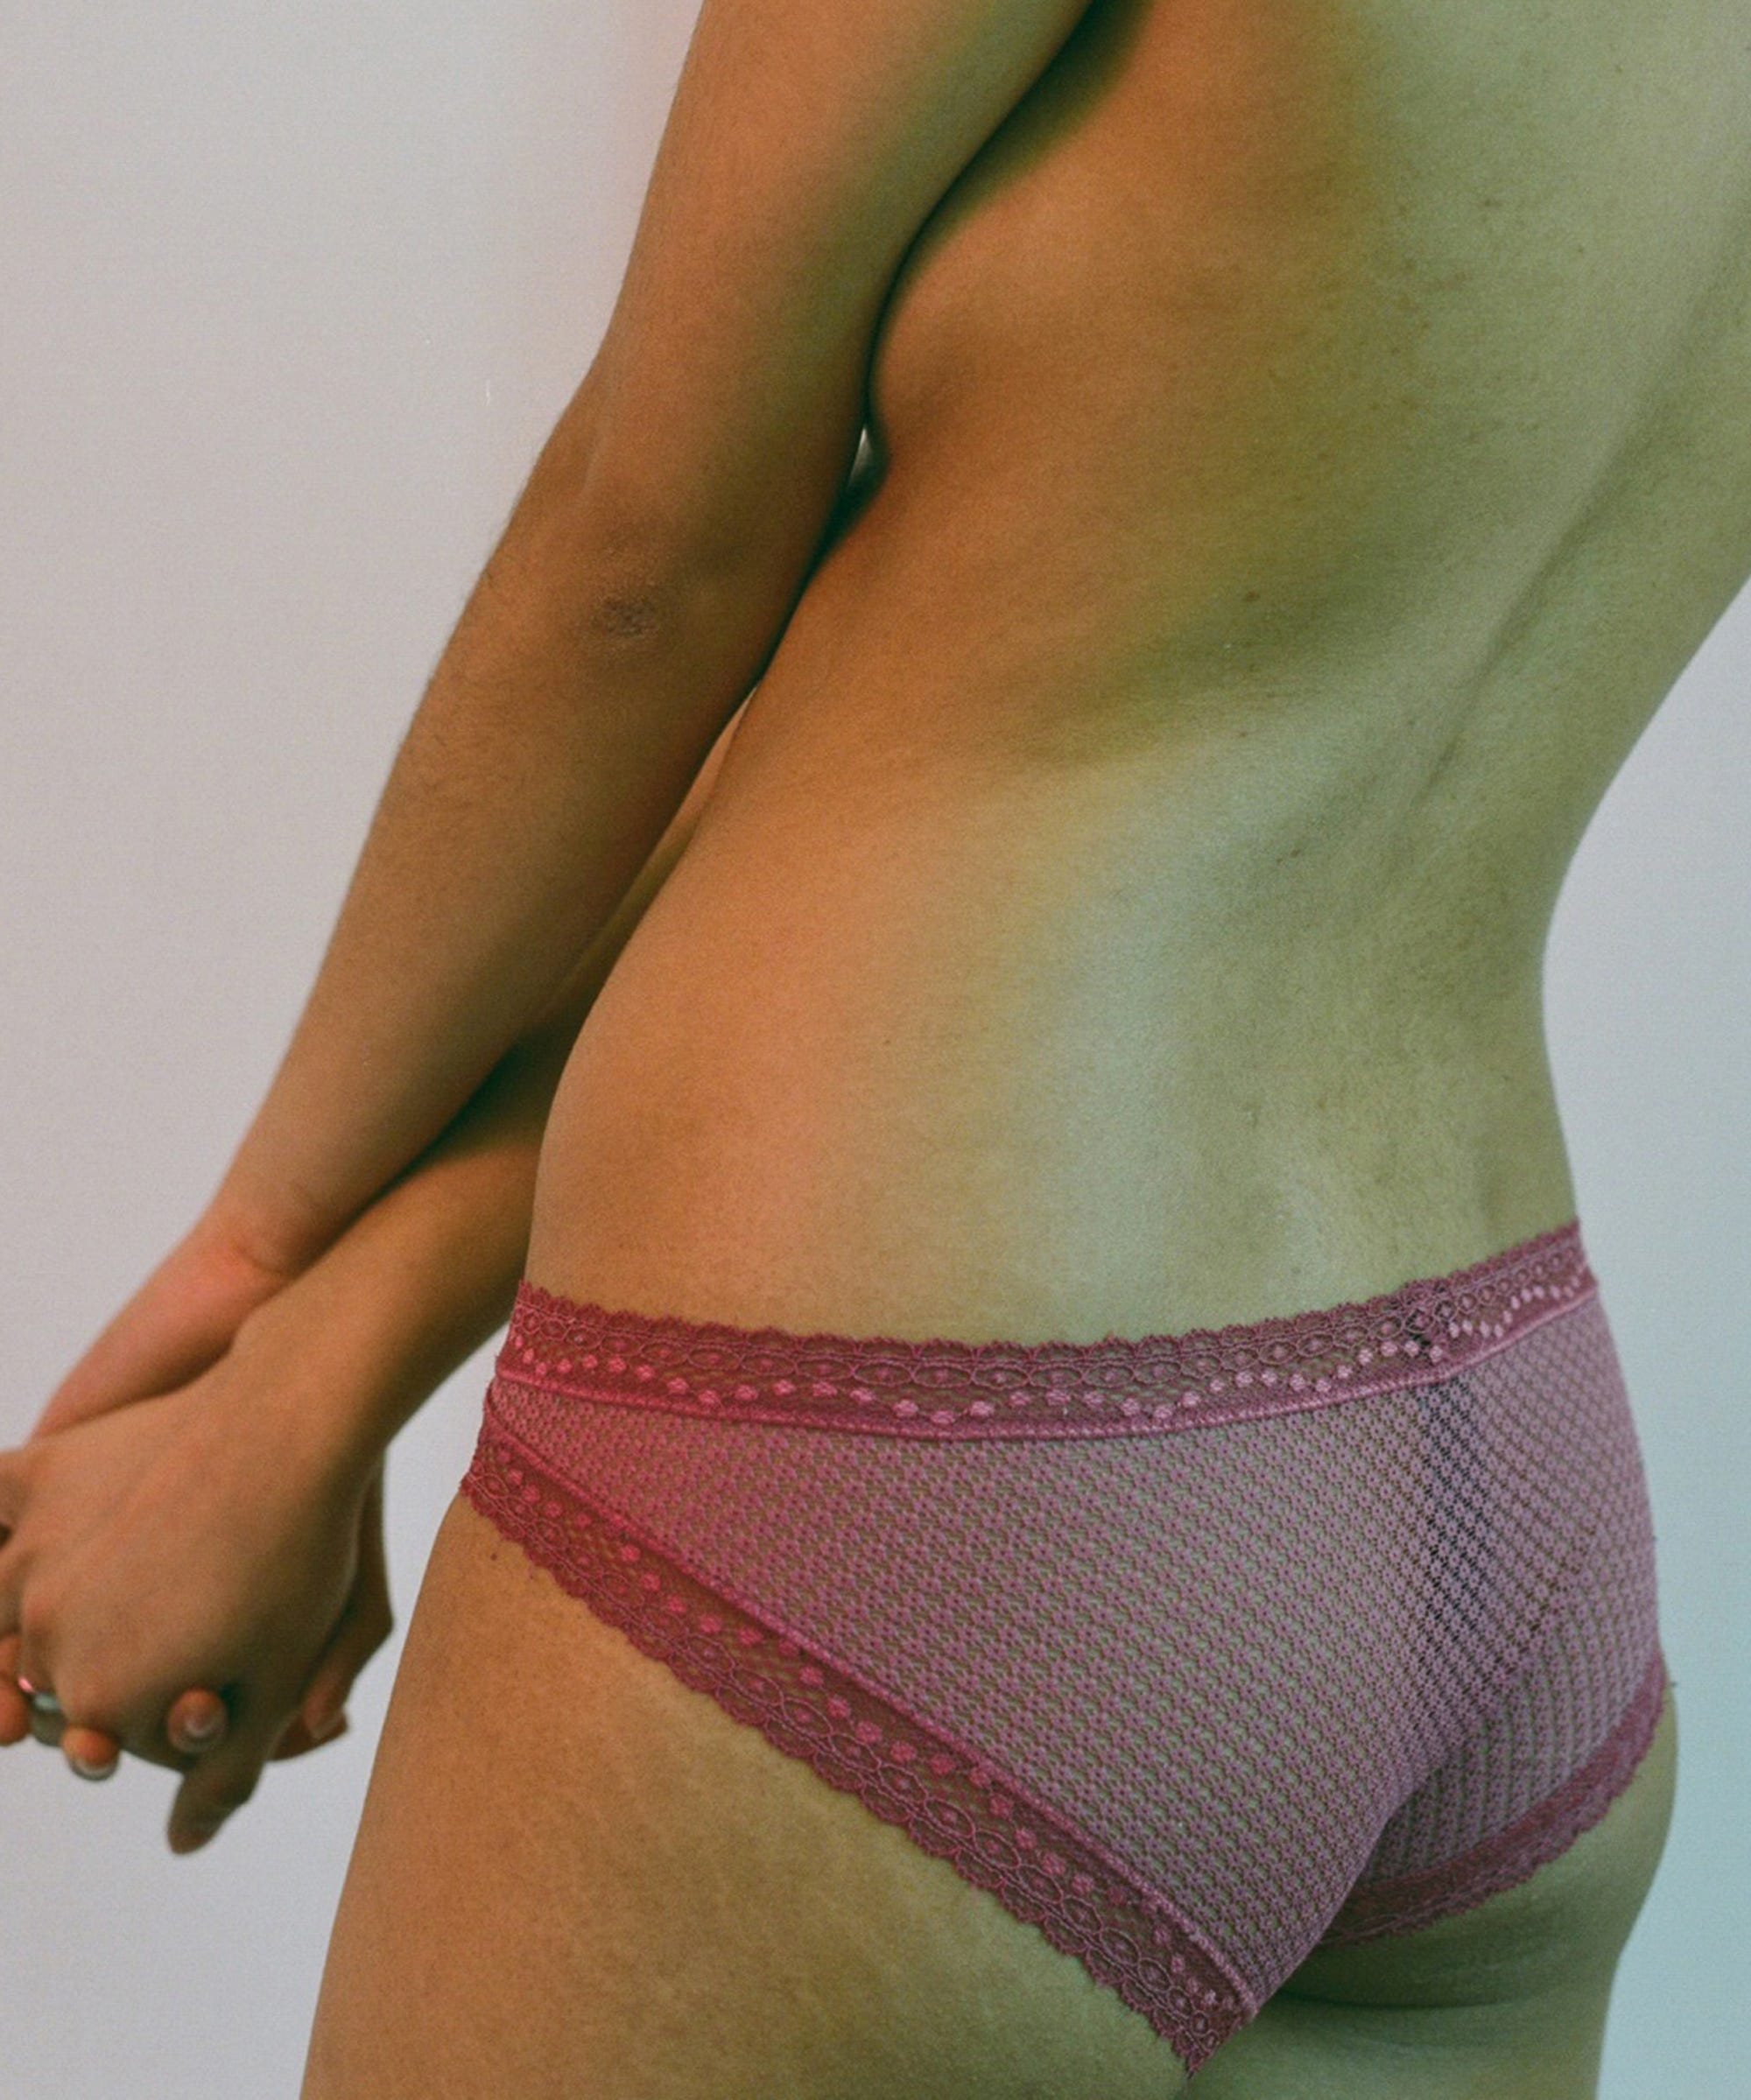 If Your Vulva Is Swollen, This Might Be Why